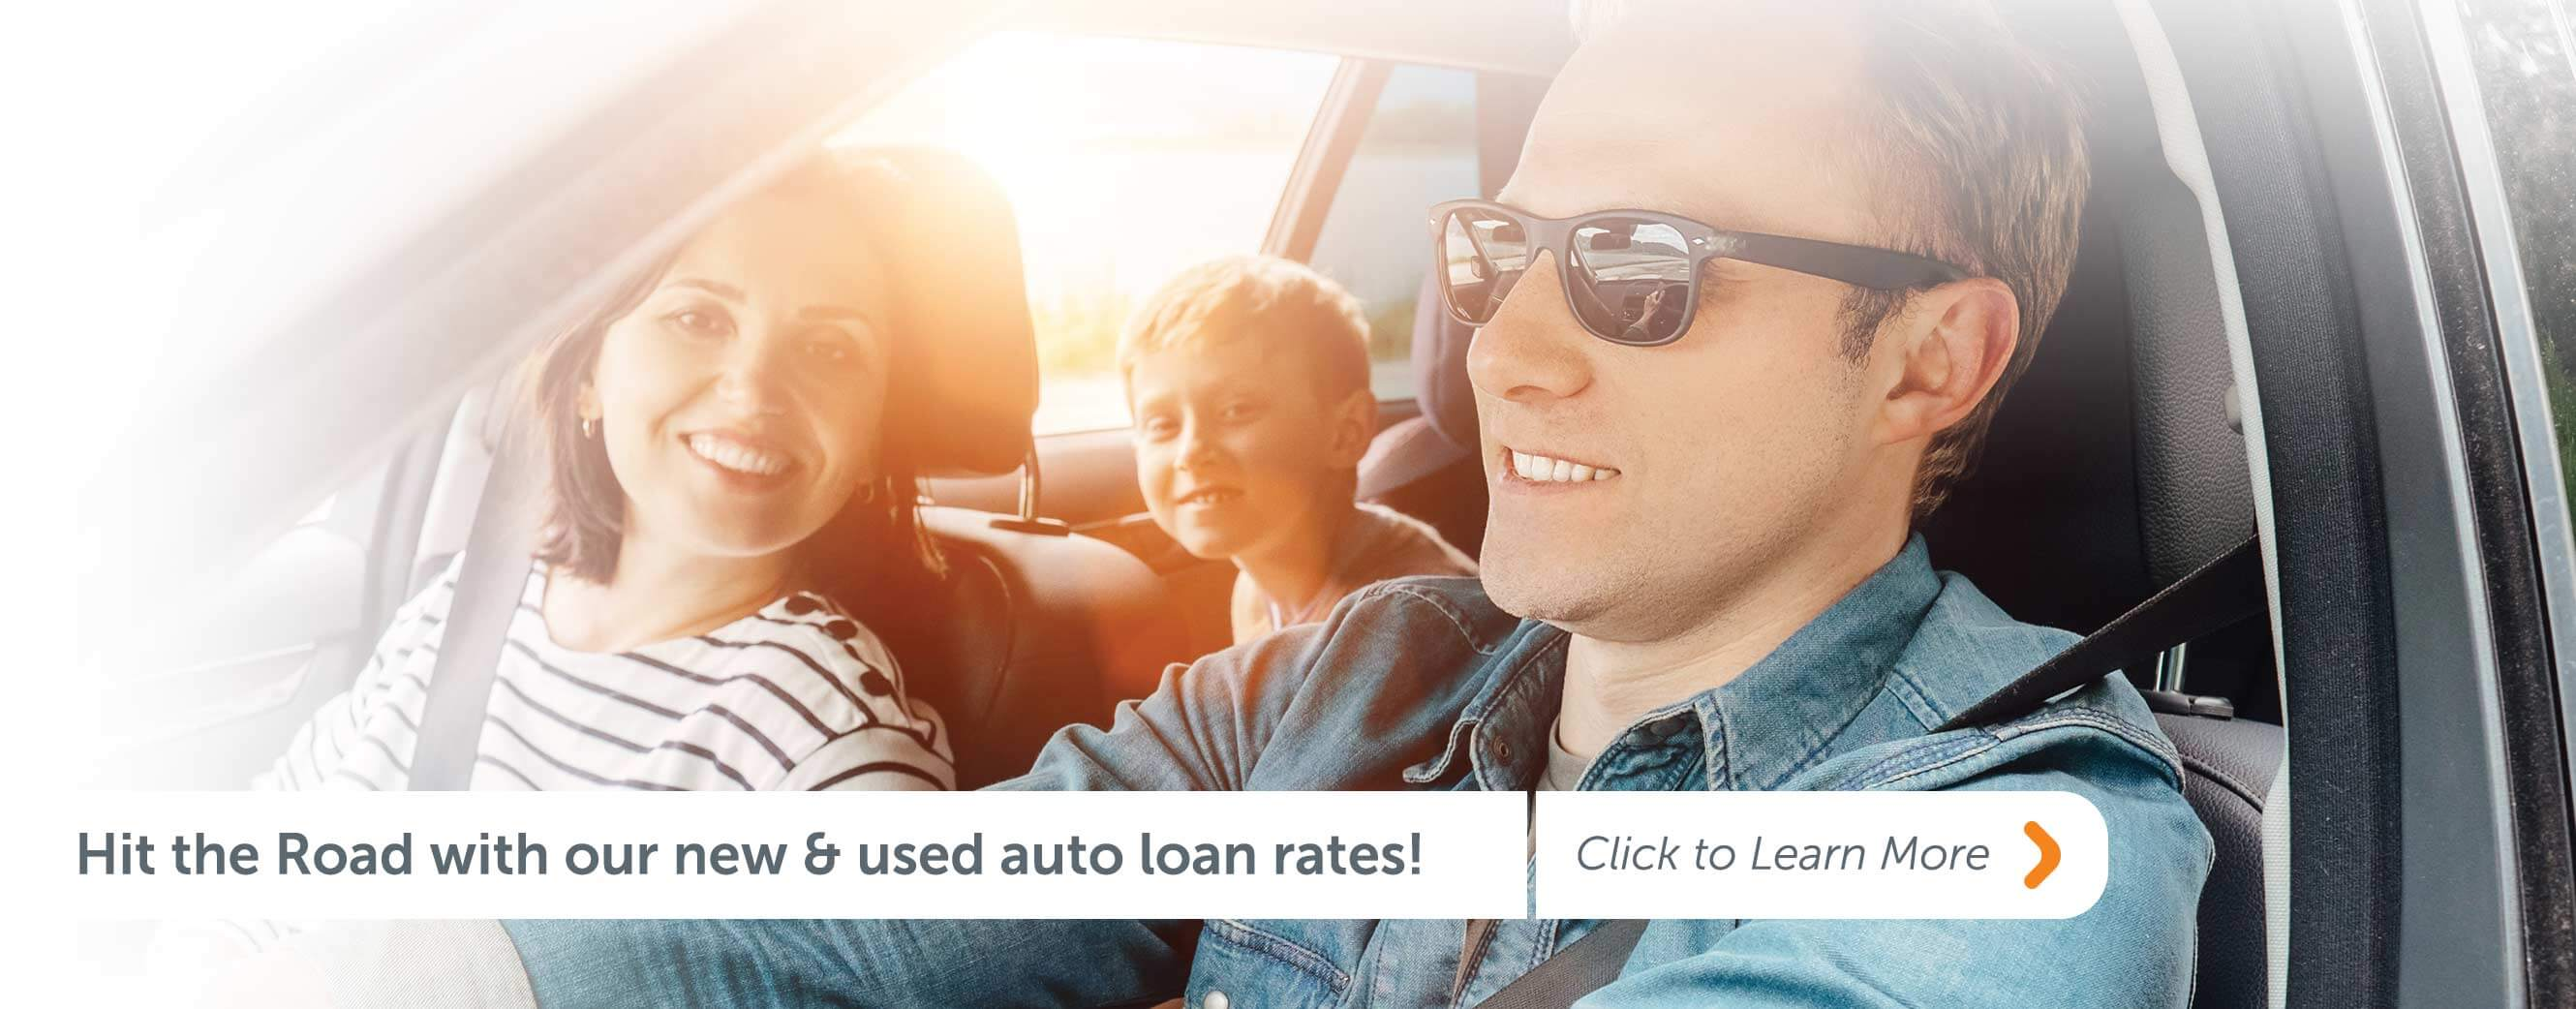 Auto Loan Rates as low as 3.25% APR* Click to learn more